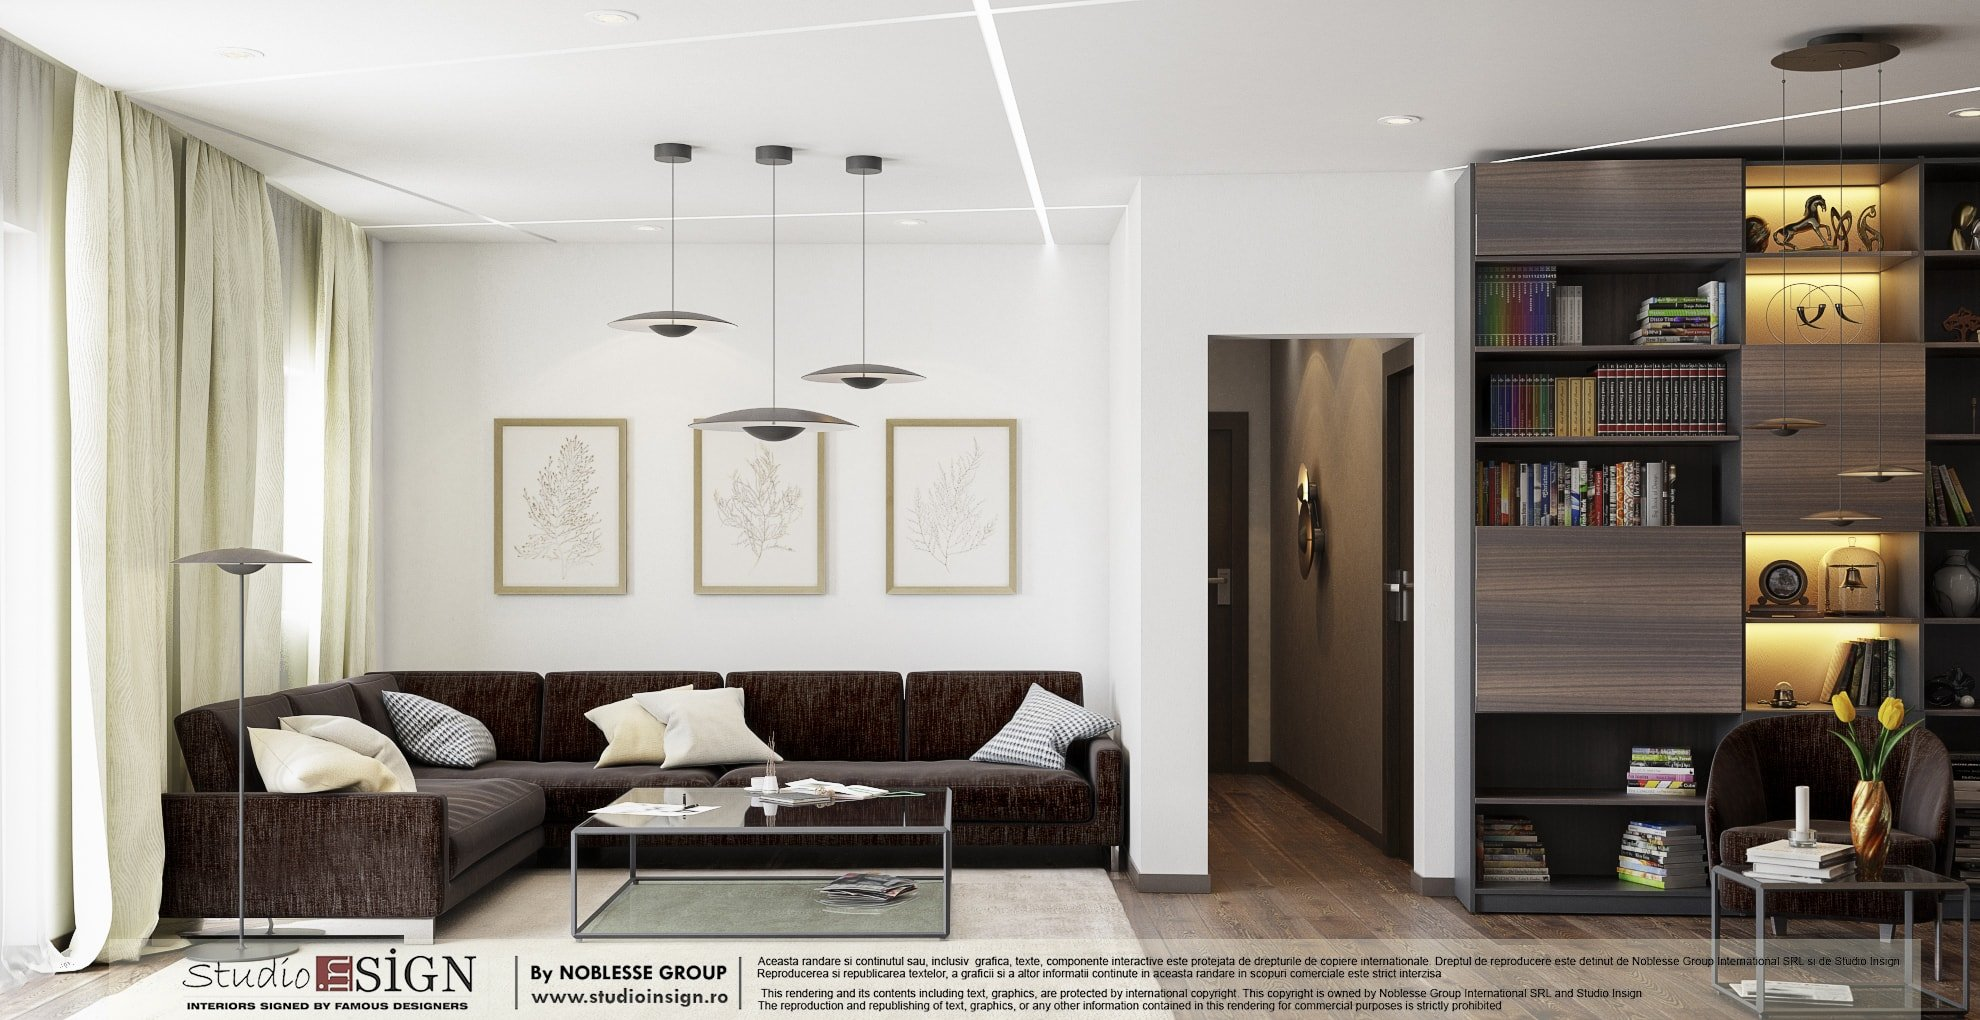 APARTMENT REFLEXIONS - MODERN INTERIOR DESIGN - Studio inSIGN